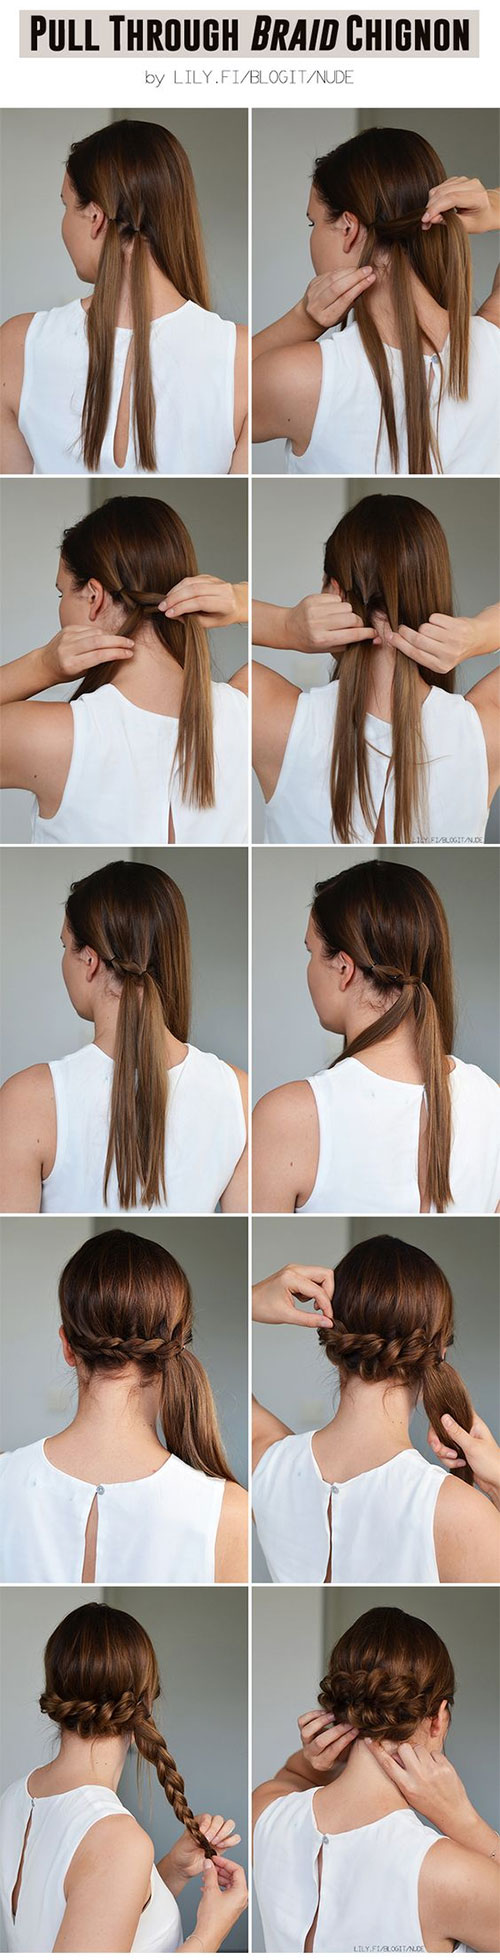 updos for girls with long hair — easy hairstyle tutorials for prom/wedding/etc!!